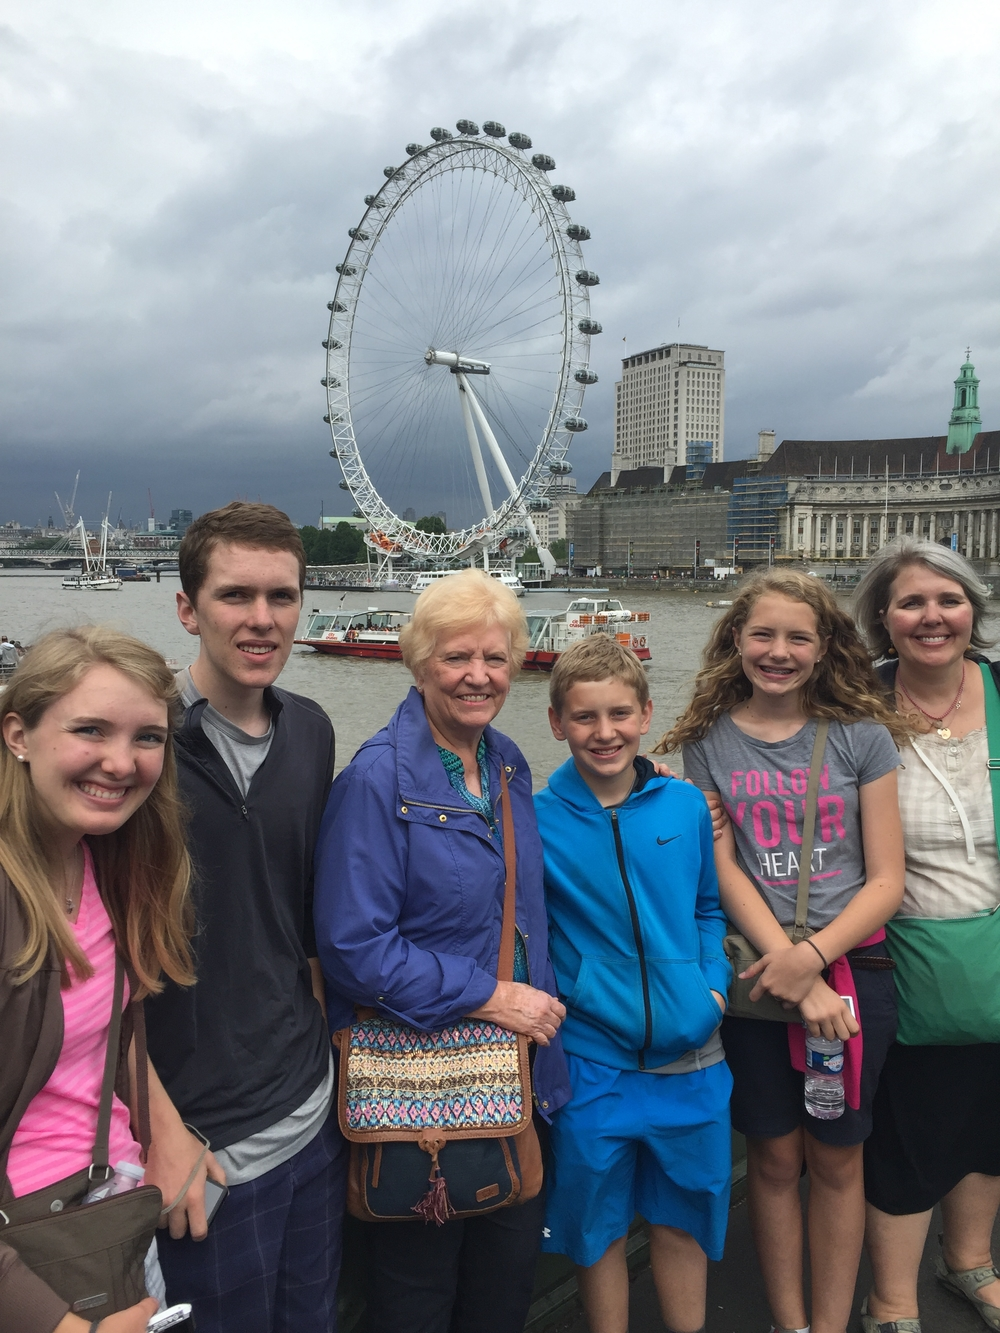 The London Eye in the background